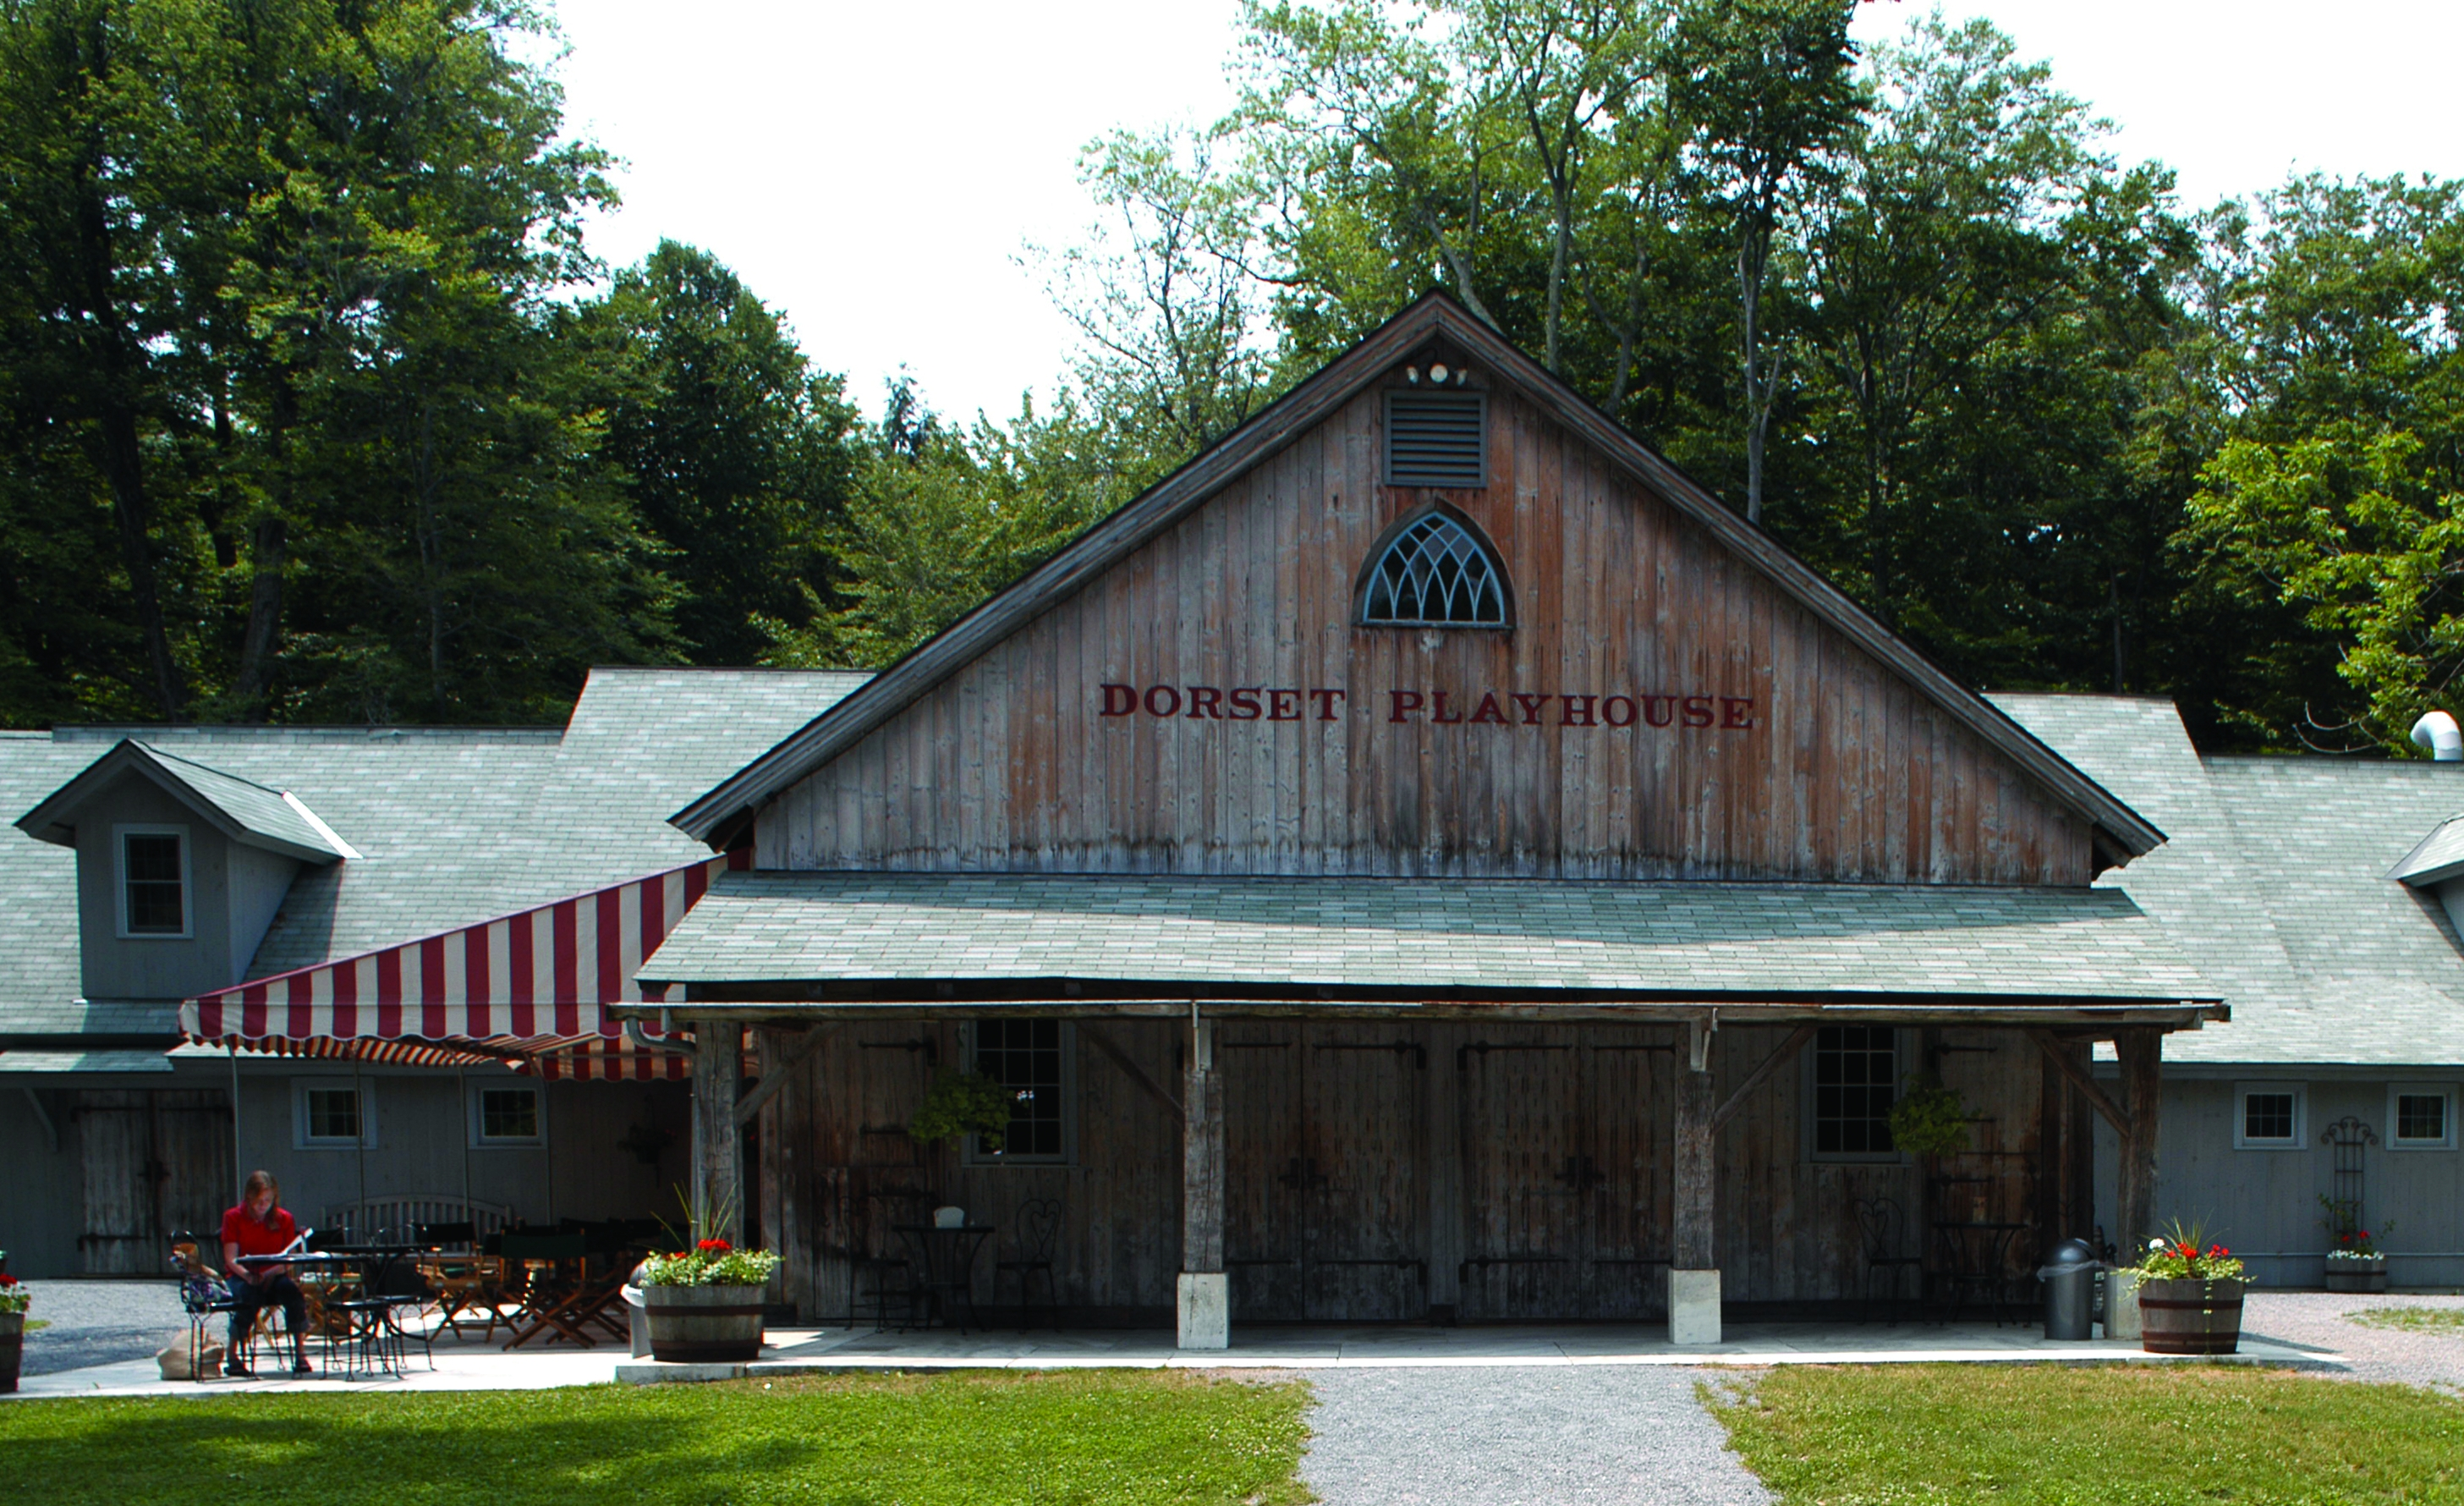 Dorset Playhouse